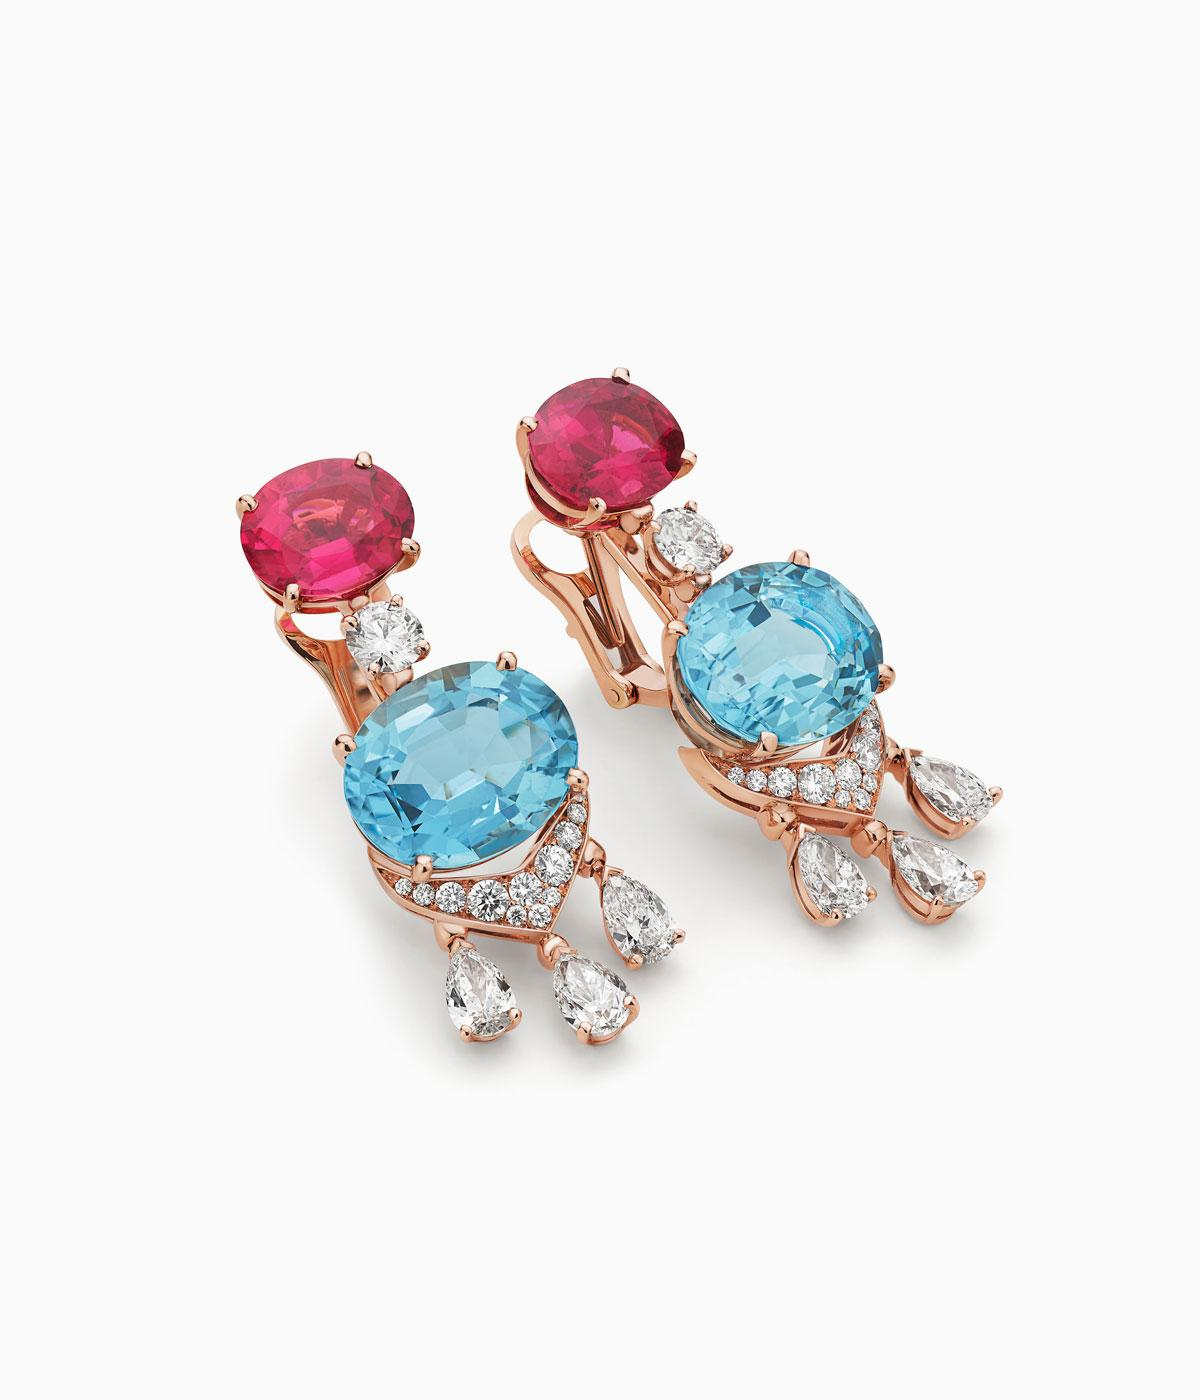 Bulgari earrings with blue and red precious stones